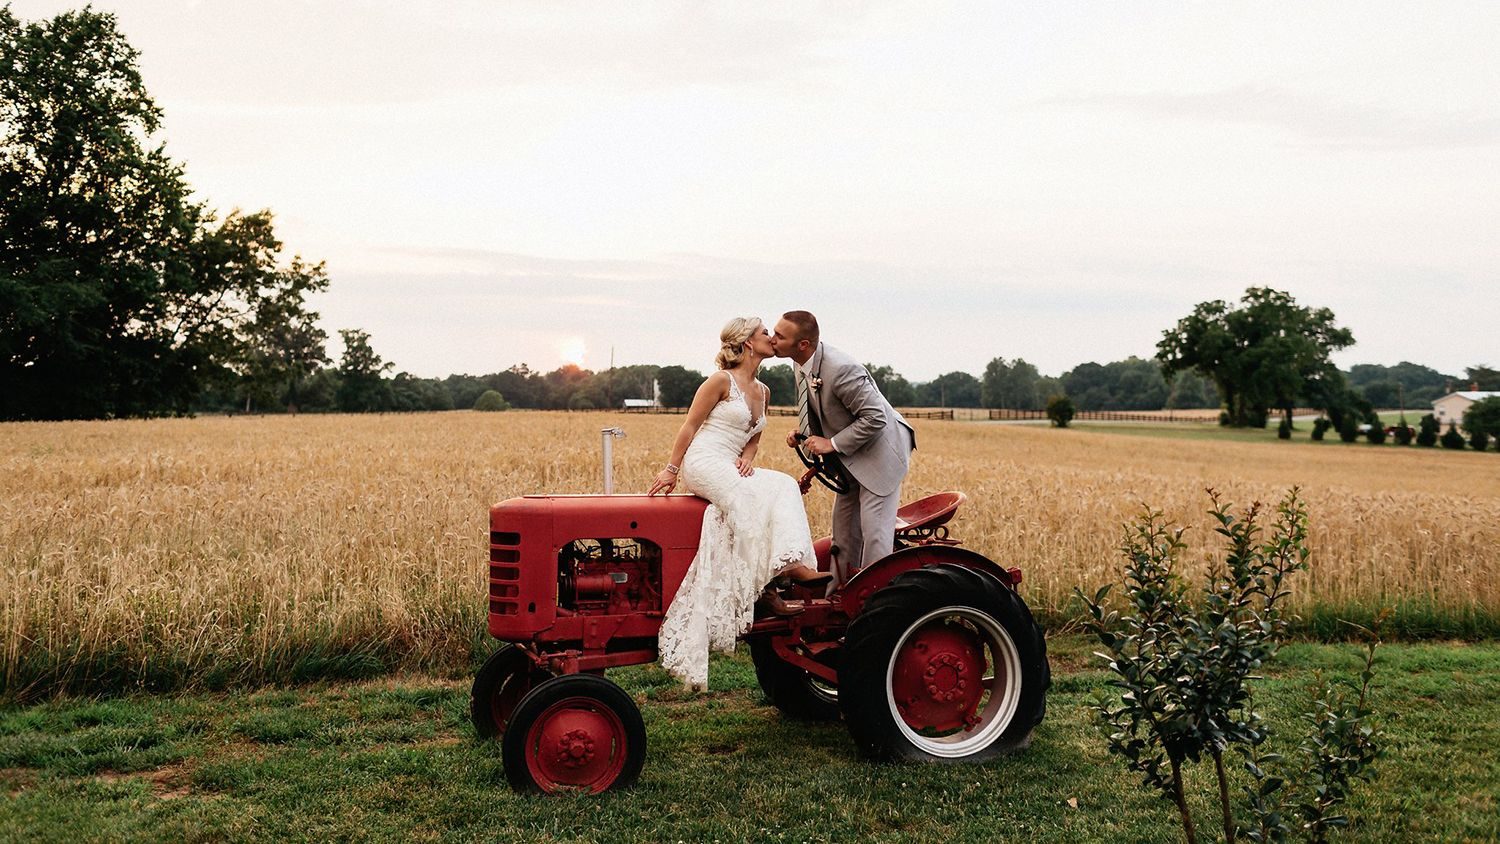 Bride And Groom Kissing On Tractor